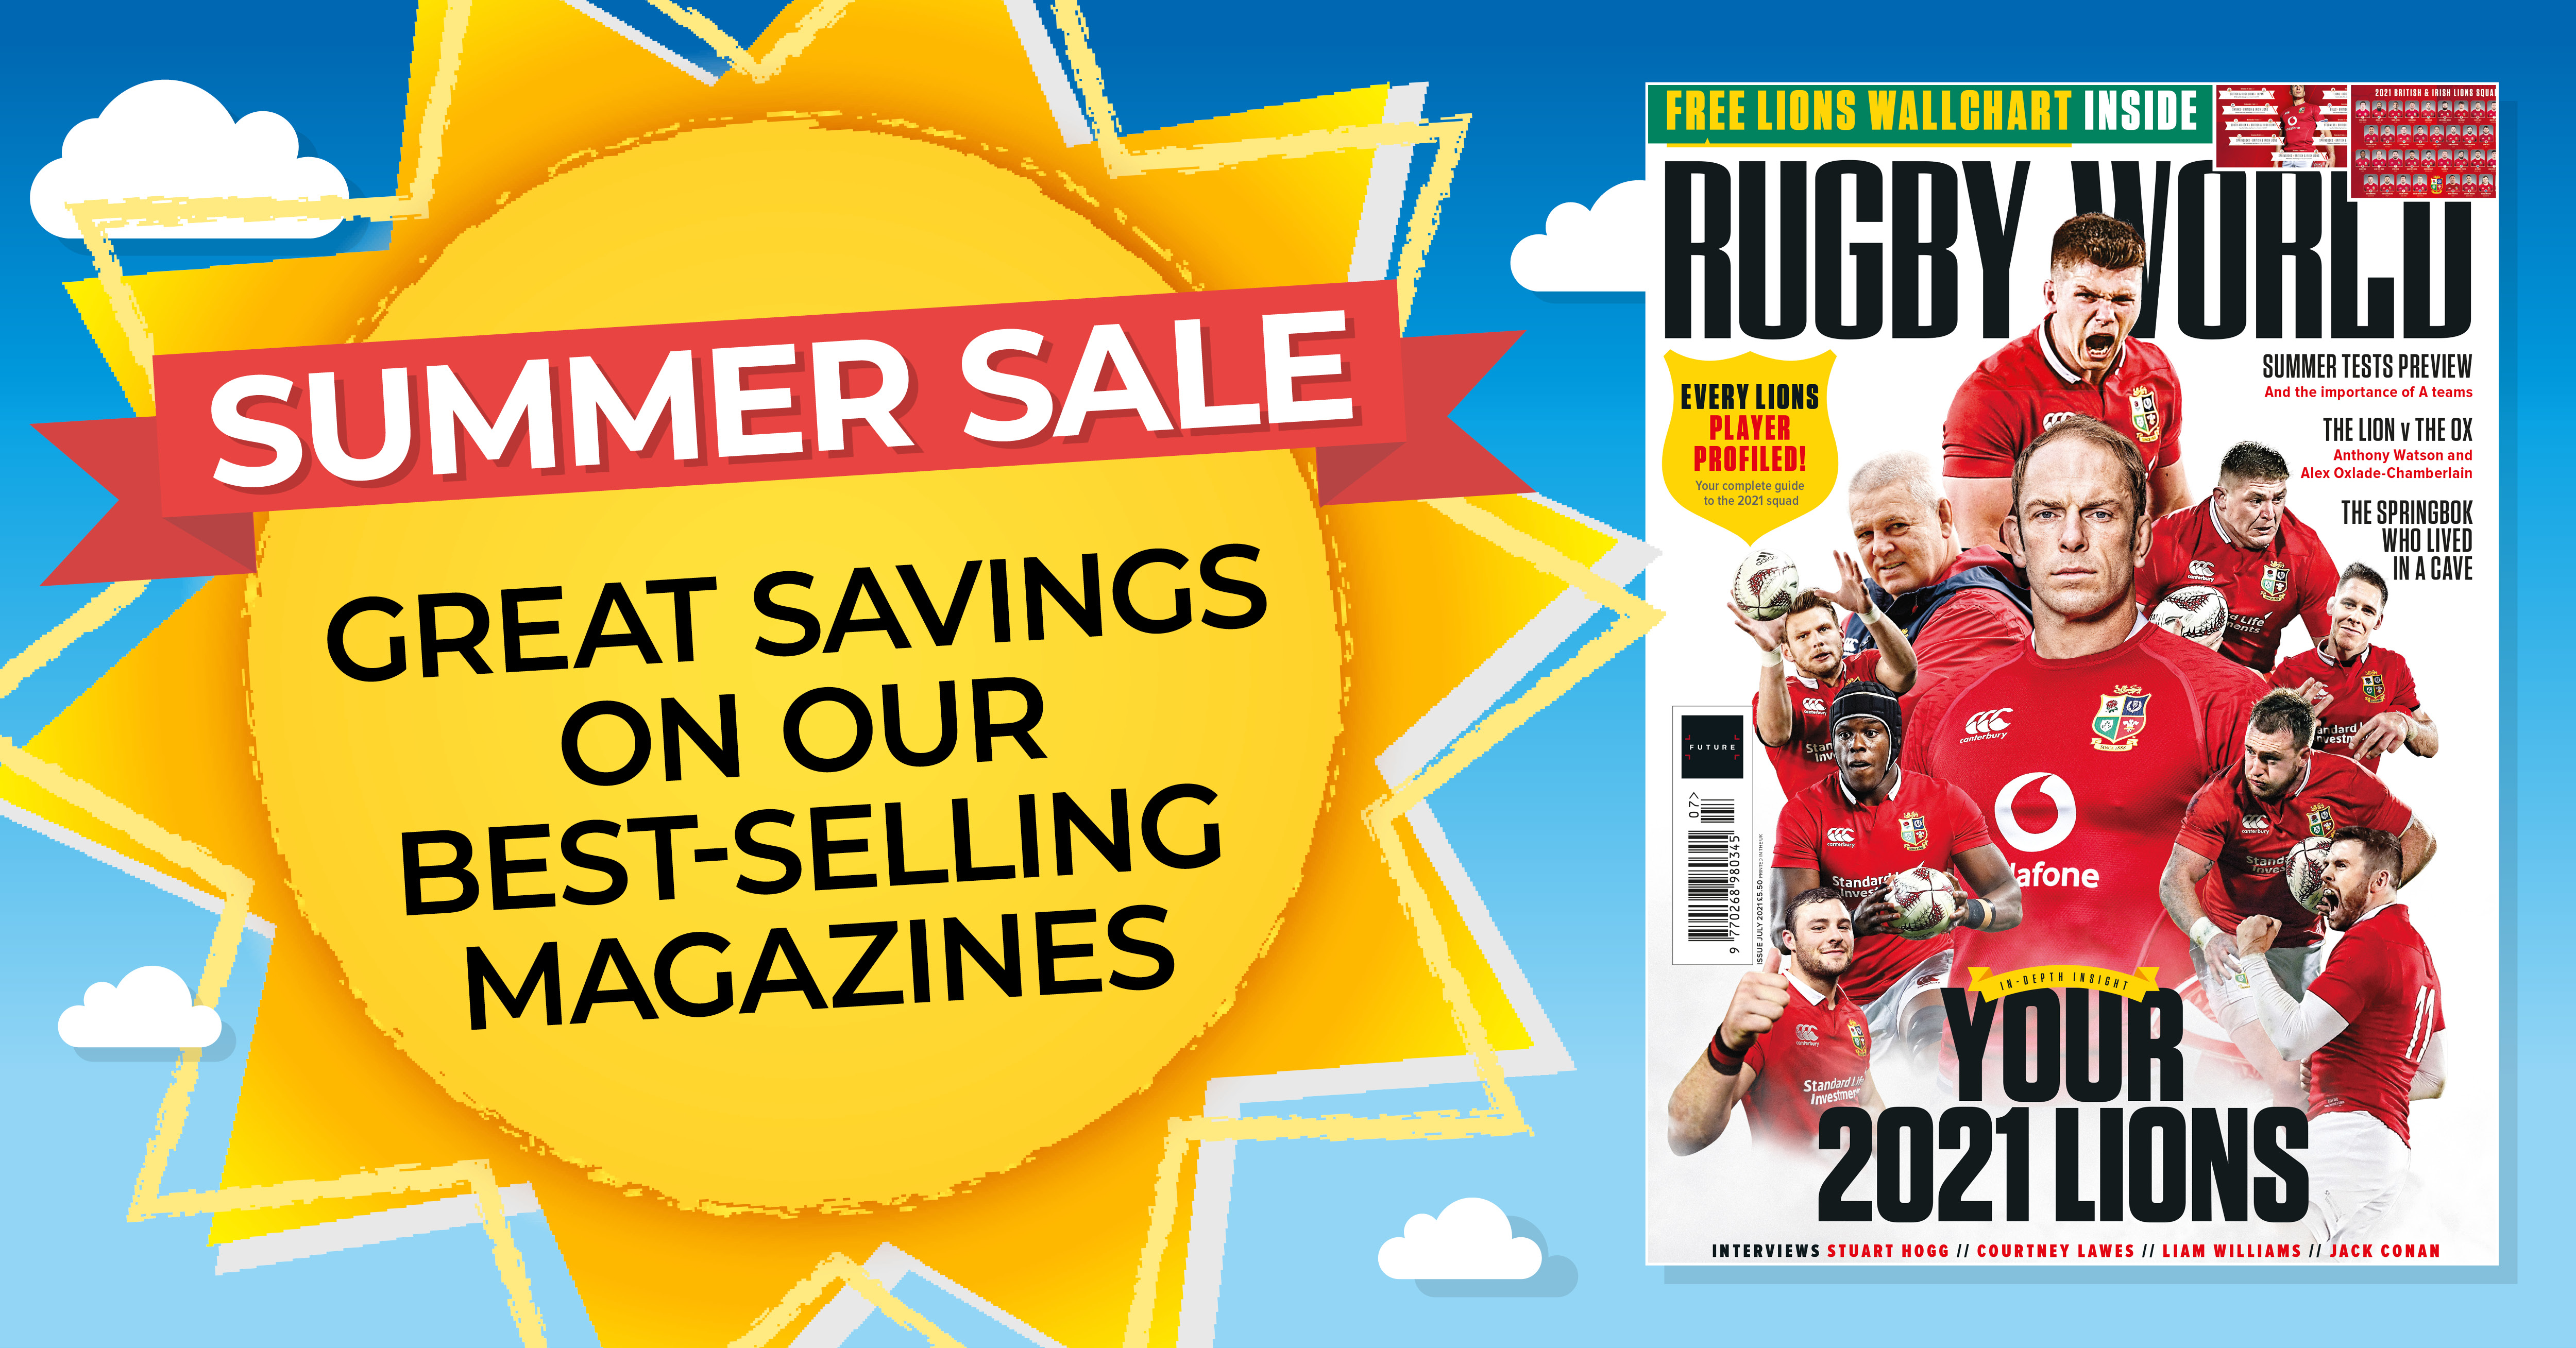 Six issues of Rugby World magazine for £9.99 - Rugby World